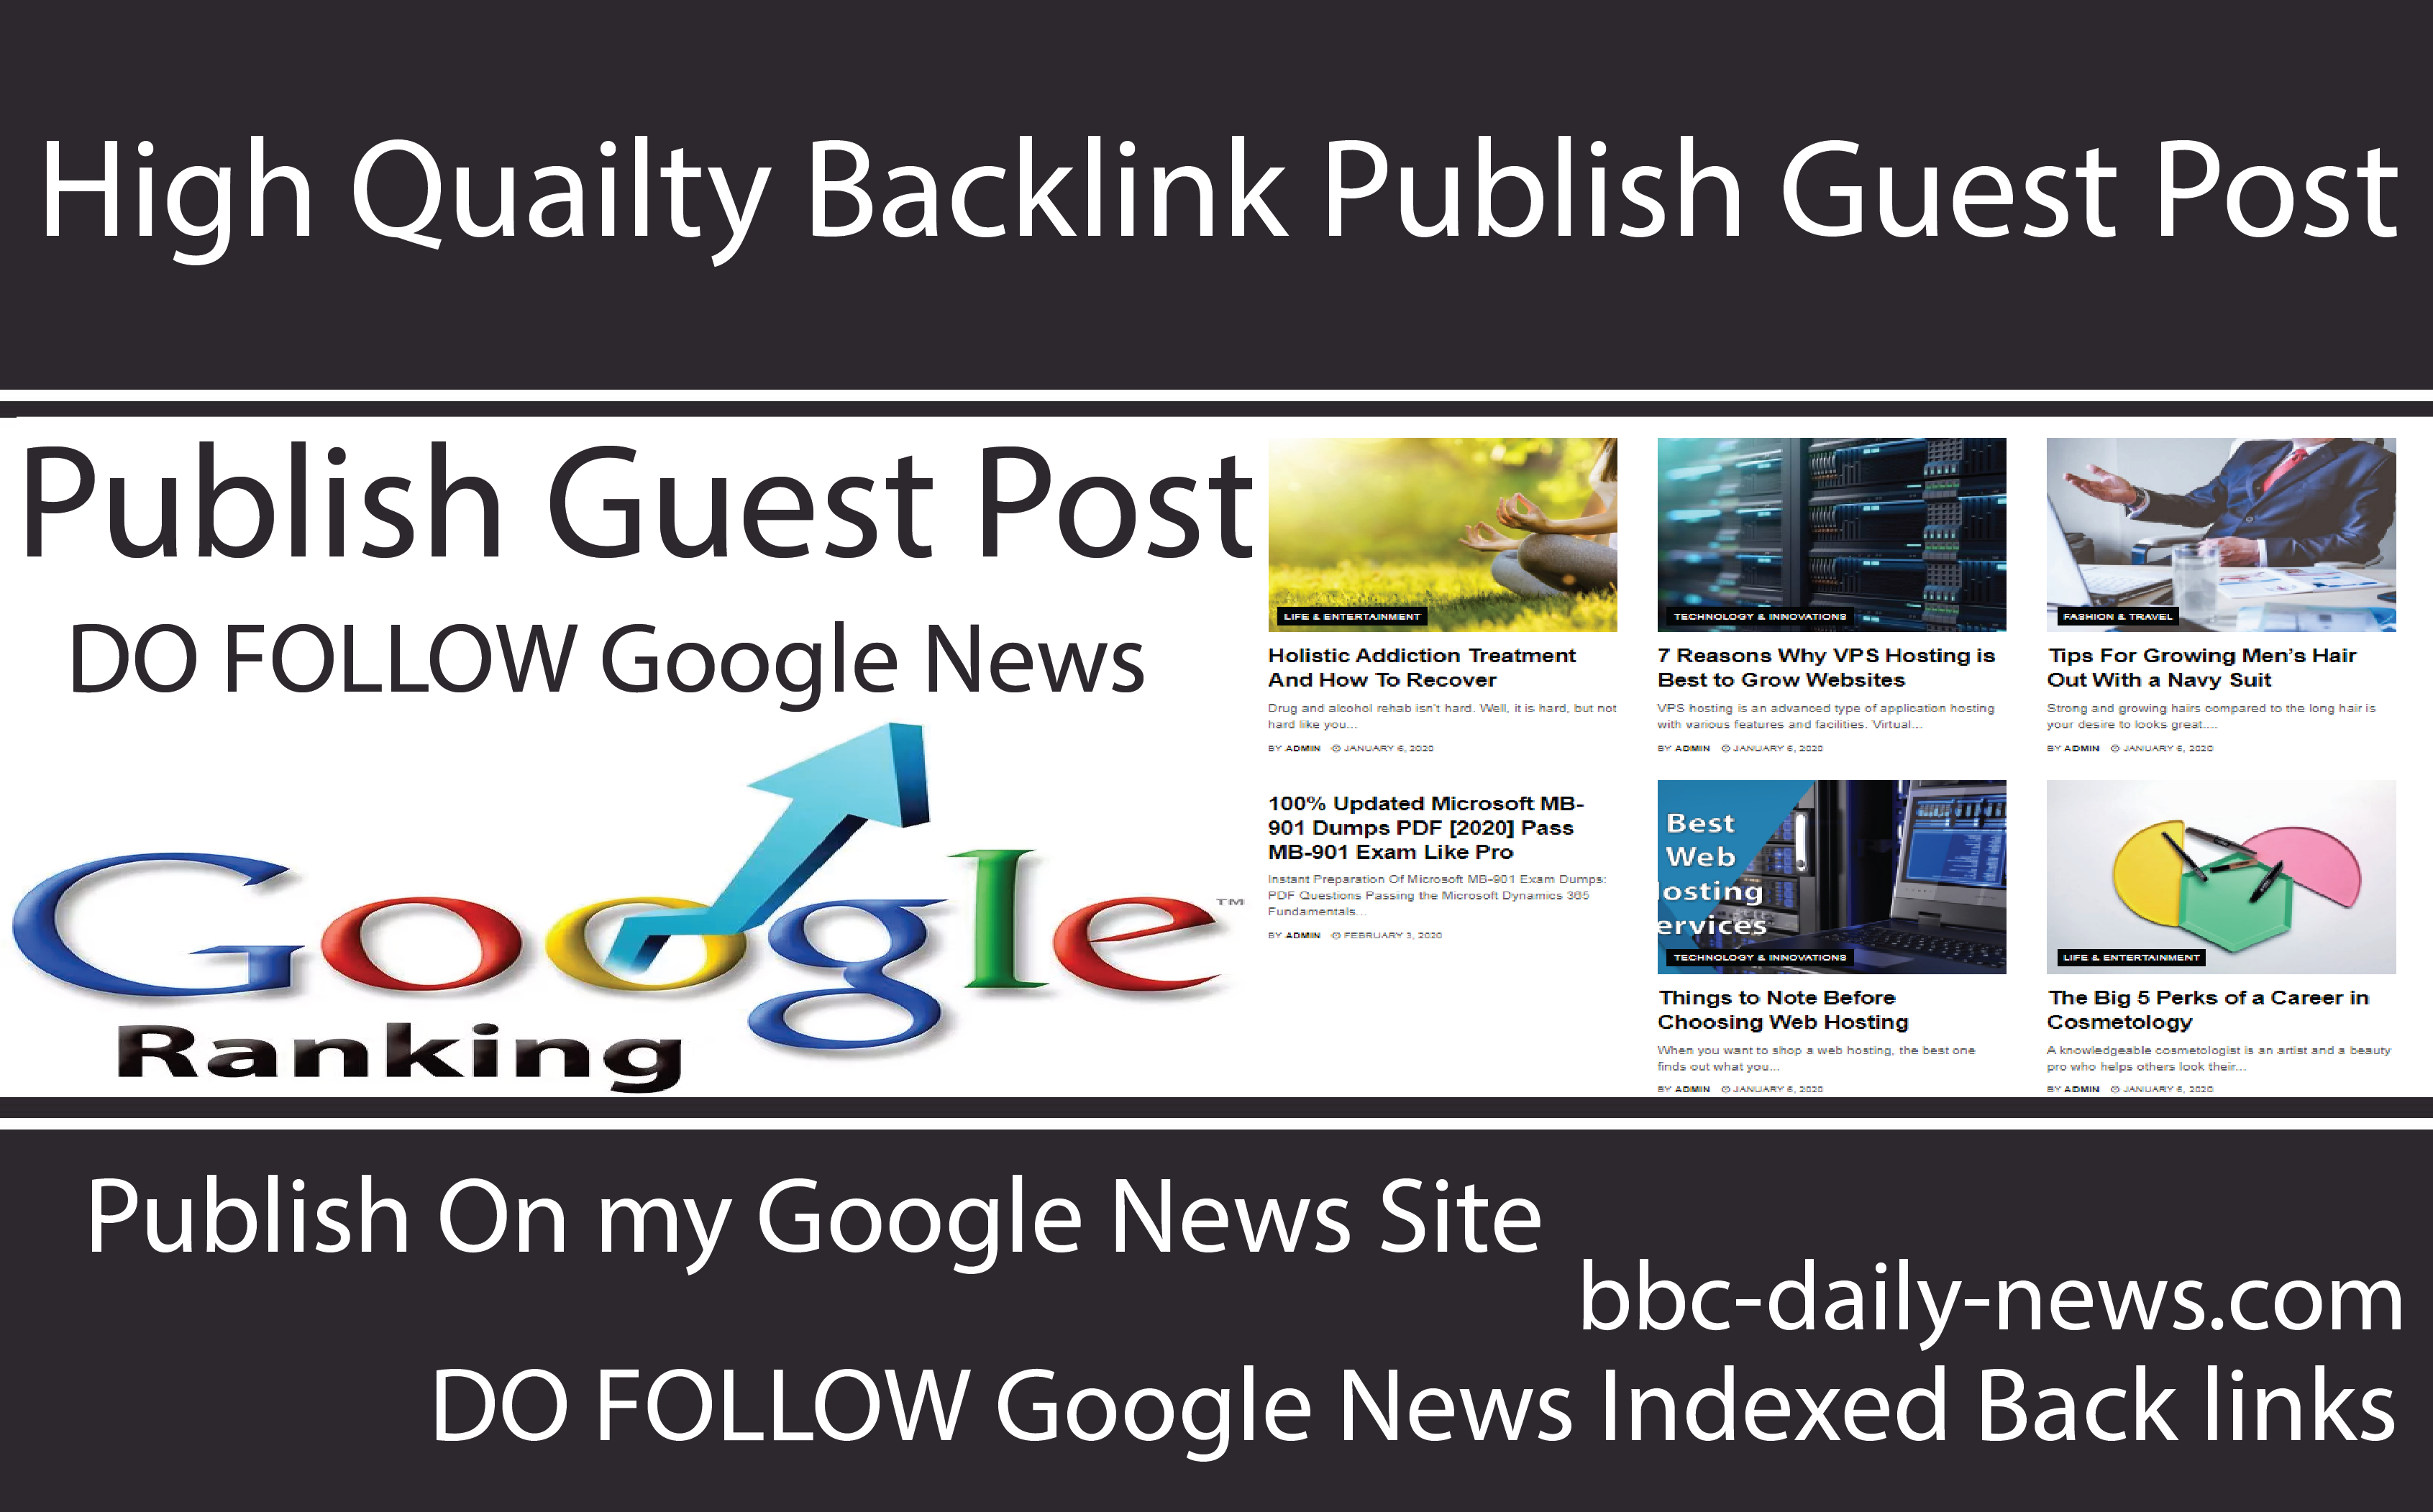 will provide guest post publish on my Google news site